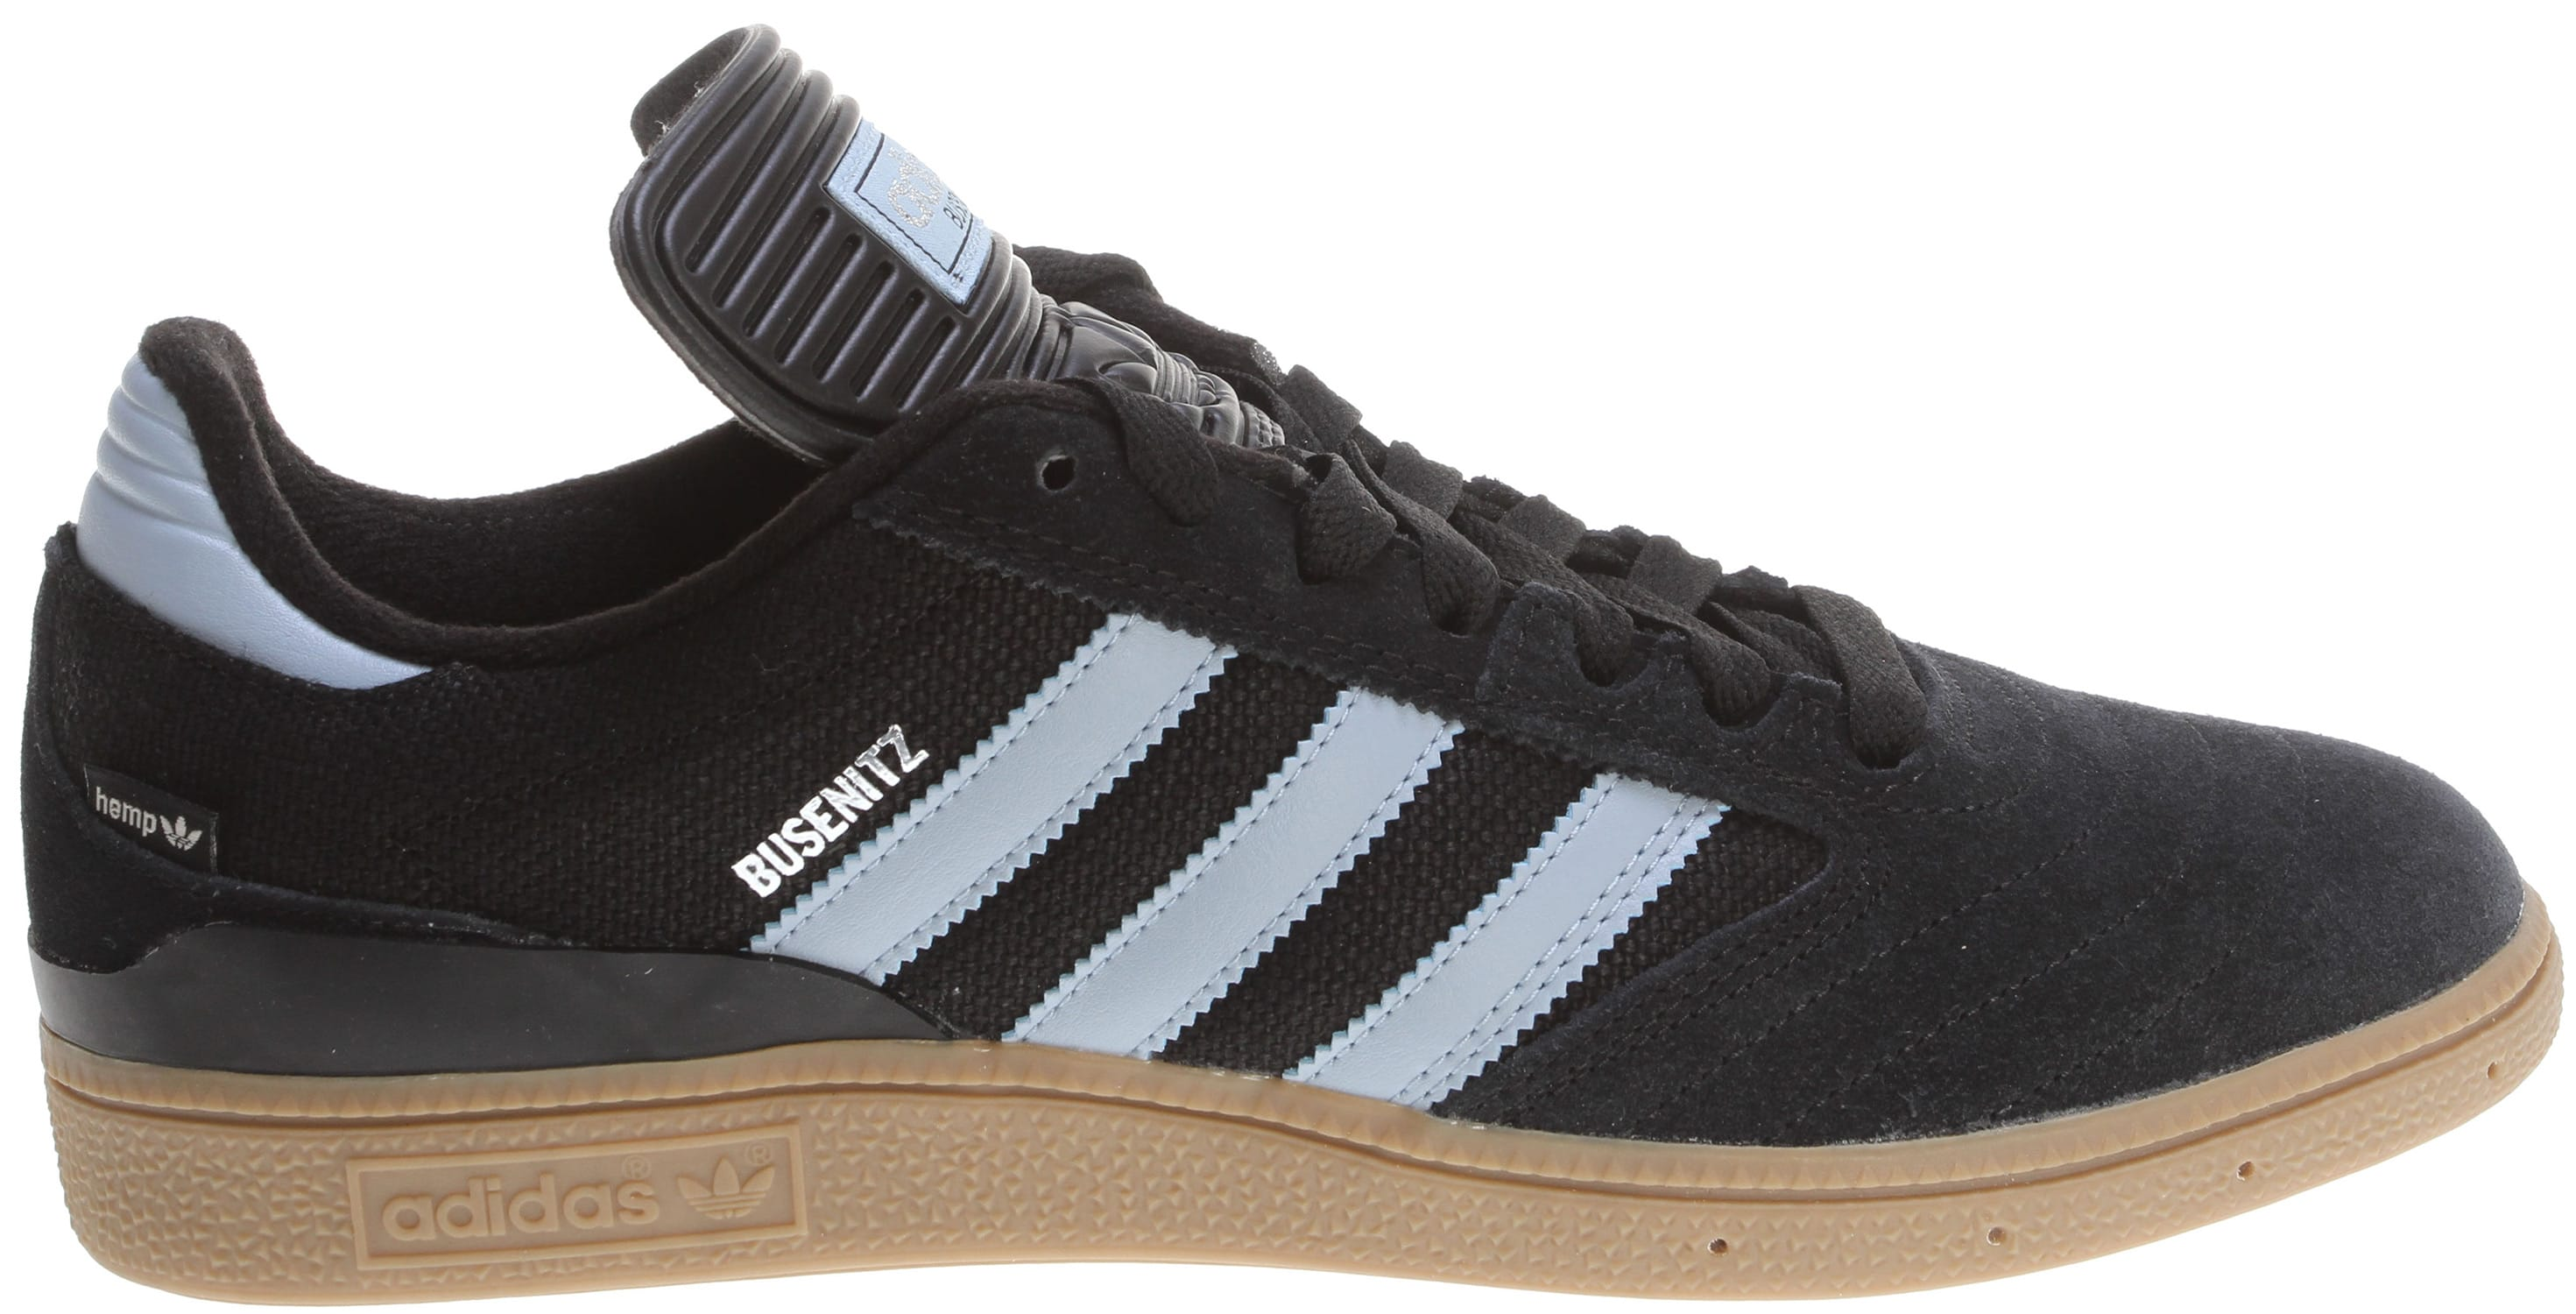 hot sale online 953ea ce023 Adidas Busenitz Pro Skate Shoes - thumbnail 1